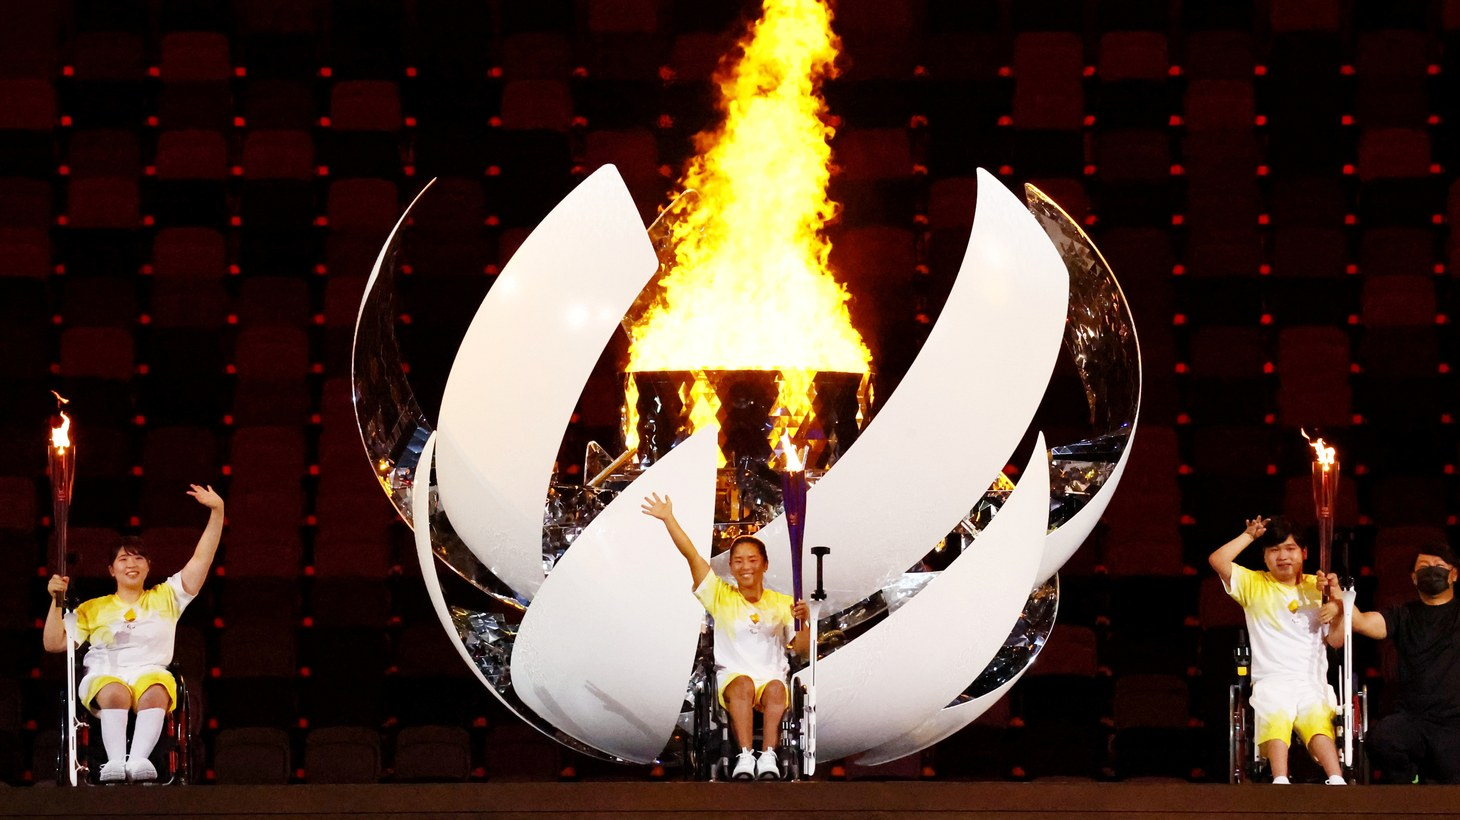 The cauldron is lit during the opening ceremony of the Paralympic Games in Tokyo, Japan, August 24, 2021.